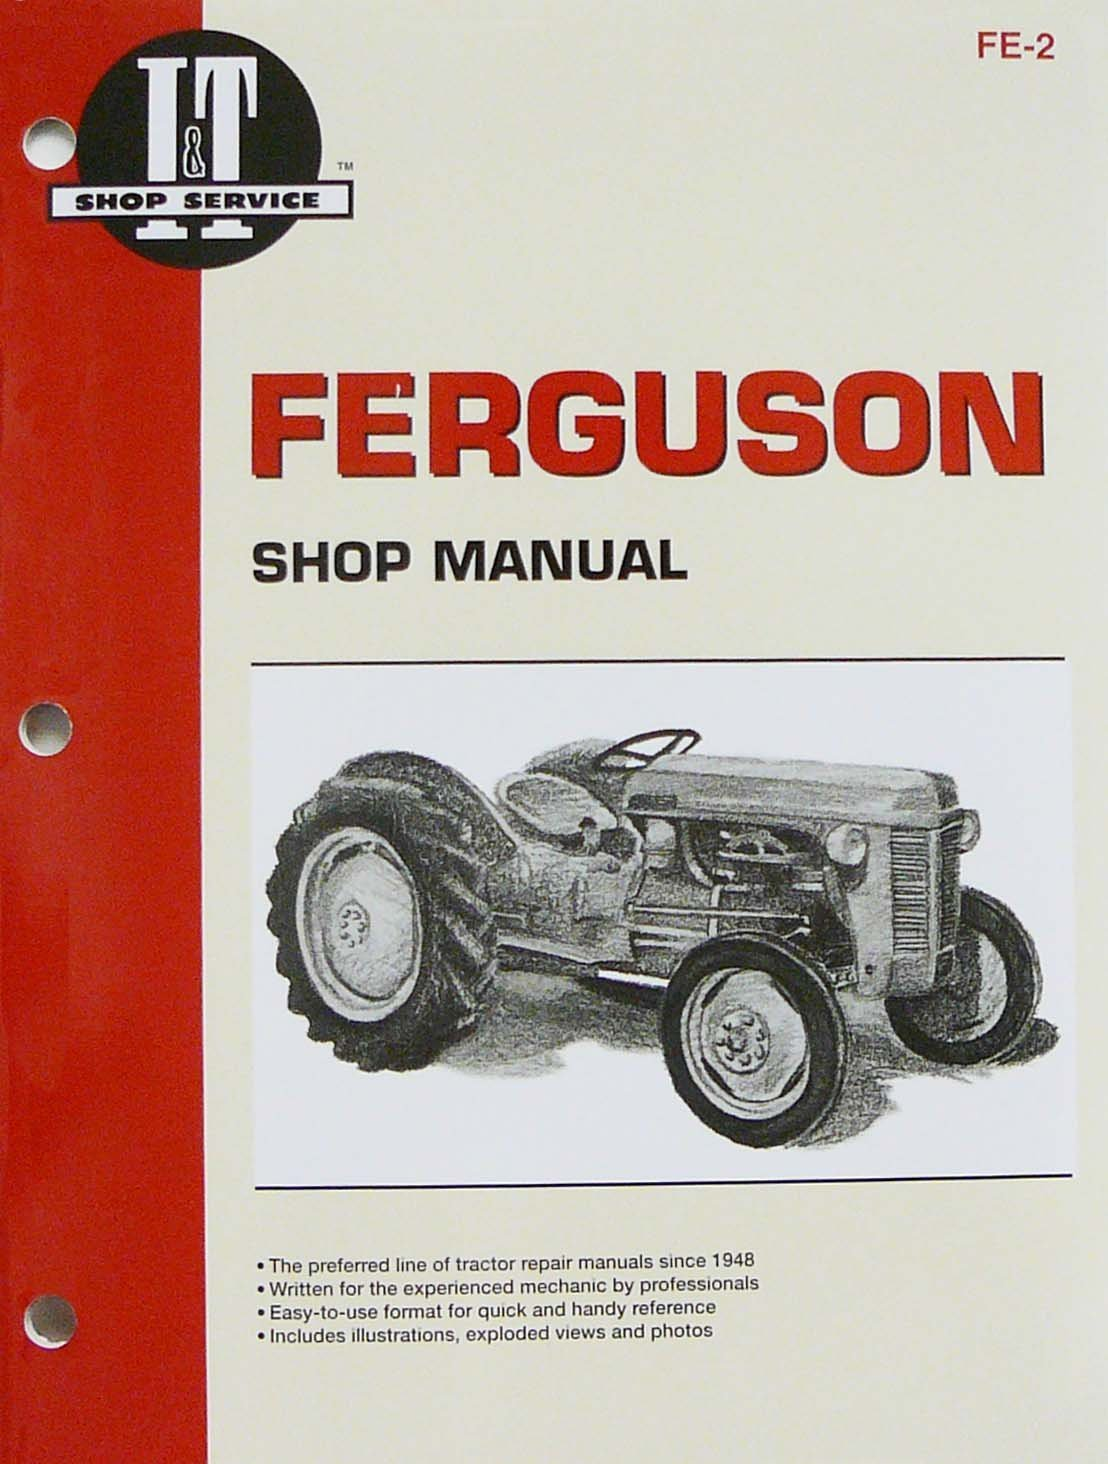 steiner tractor parts i & t shop service manual- ferguson te20, to20, to30:  amazon in: home & kitchen